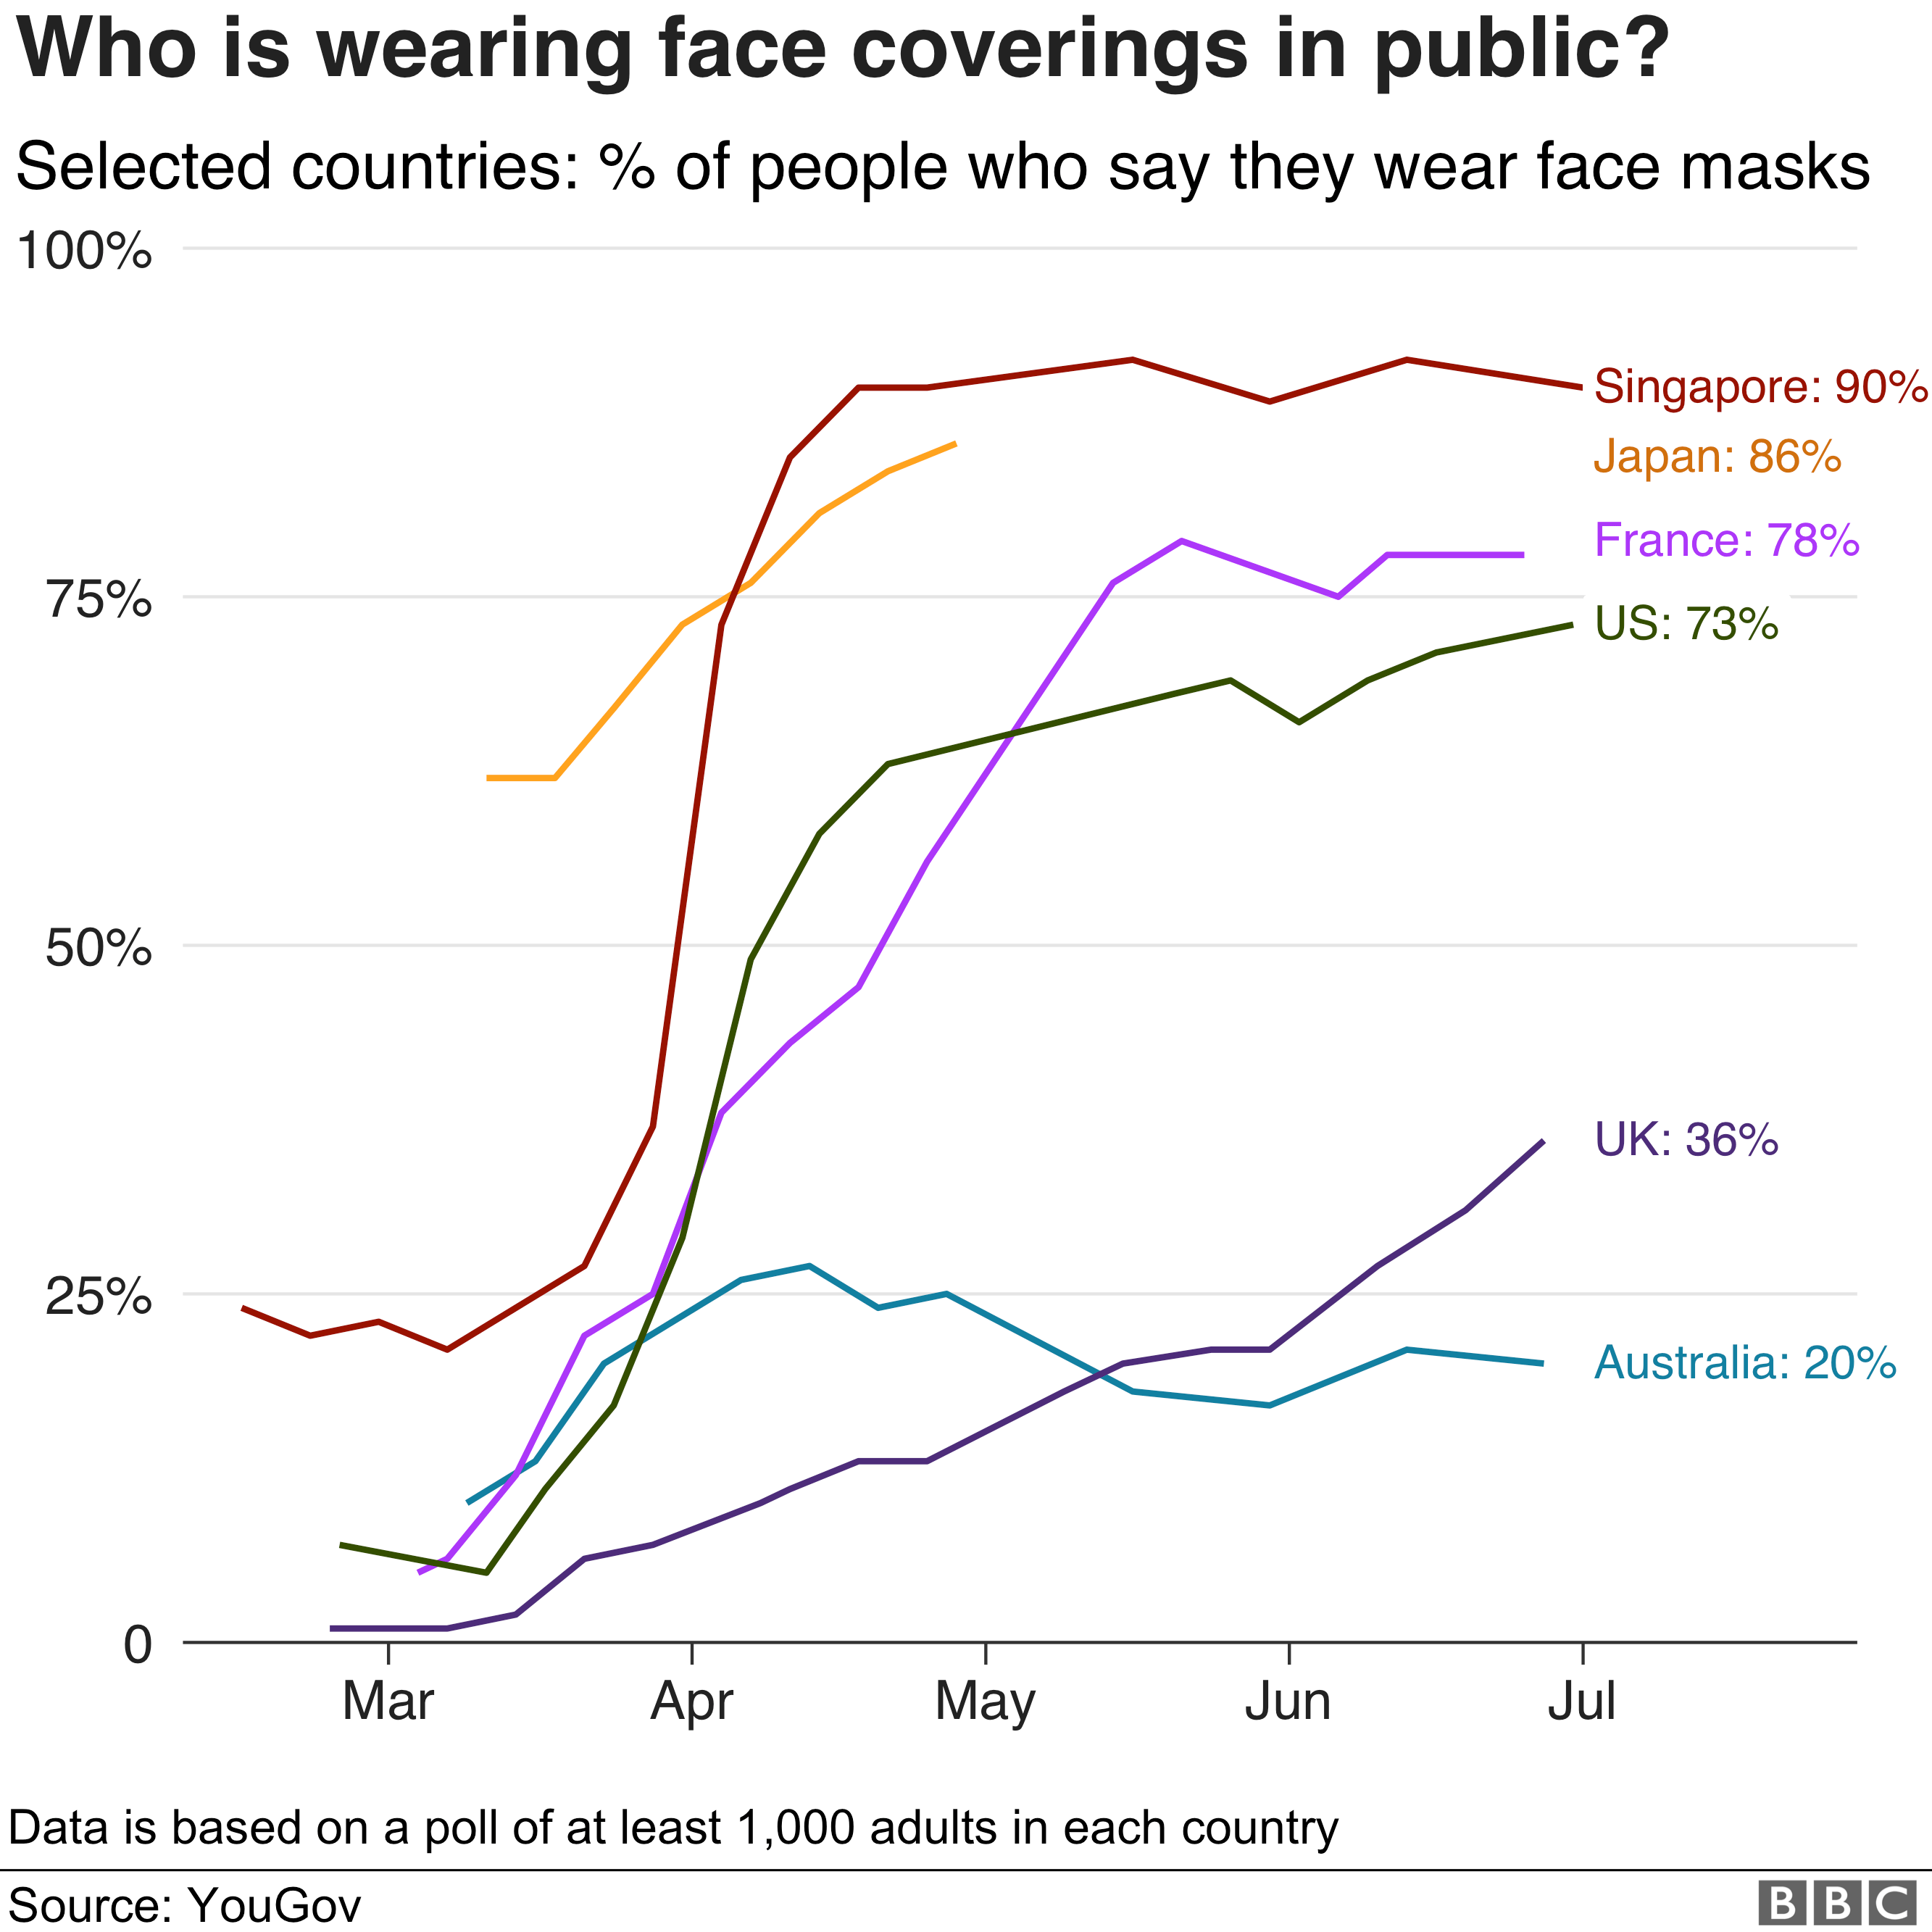 Chart showing the percent of people in different countries who say they would wear face coverings in public